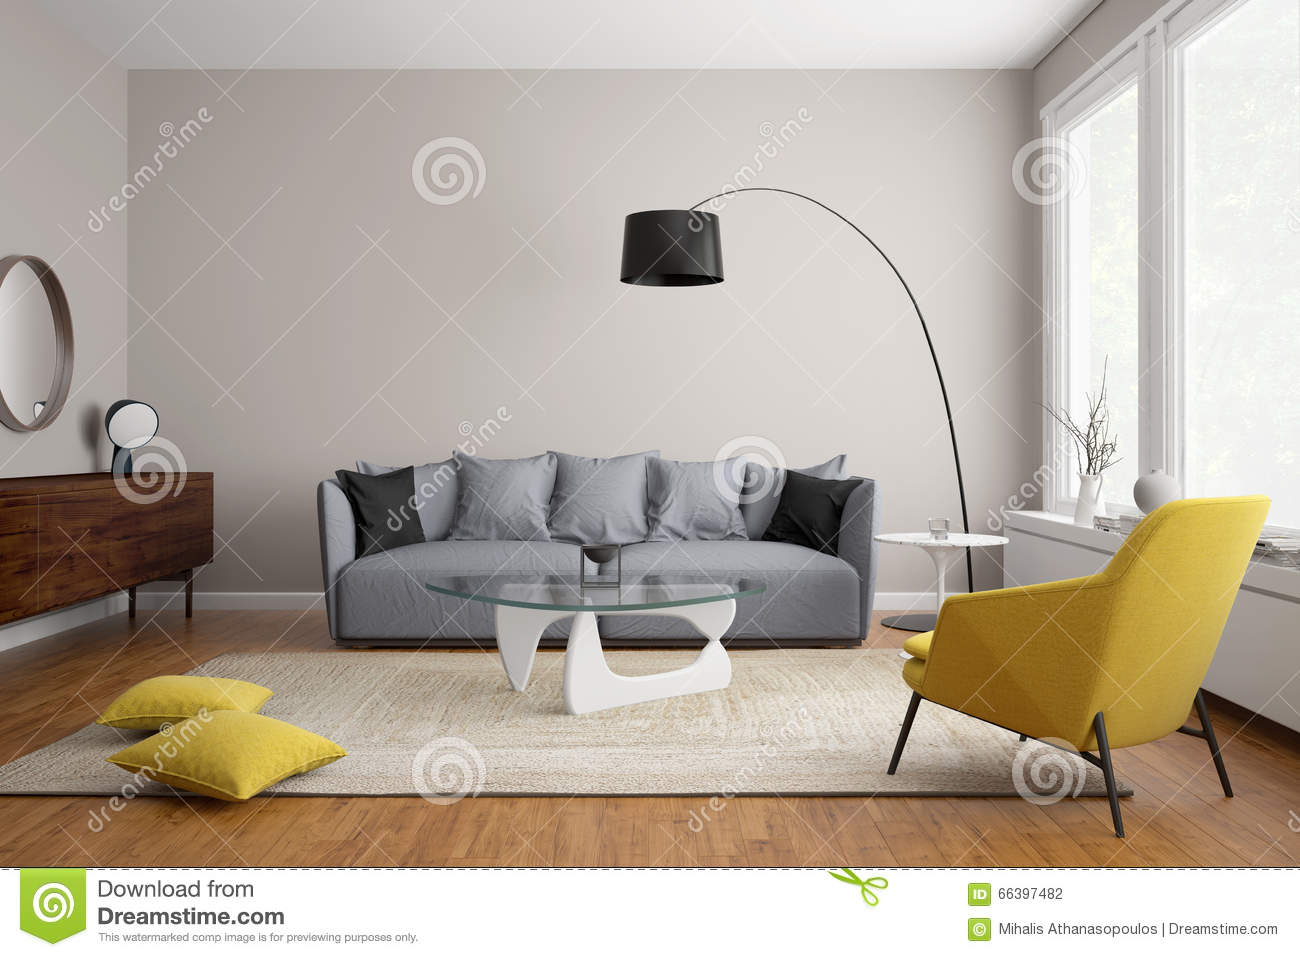 stock illustration modern scandinavian living room grey sofa rendering image - Salon Gris Scandinave